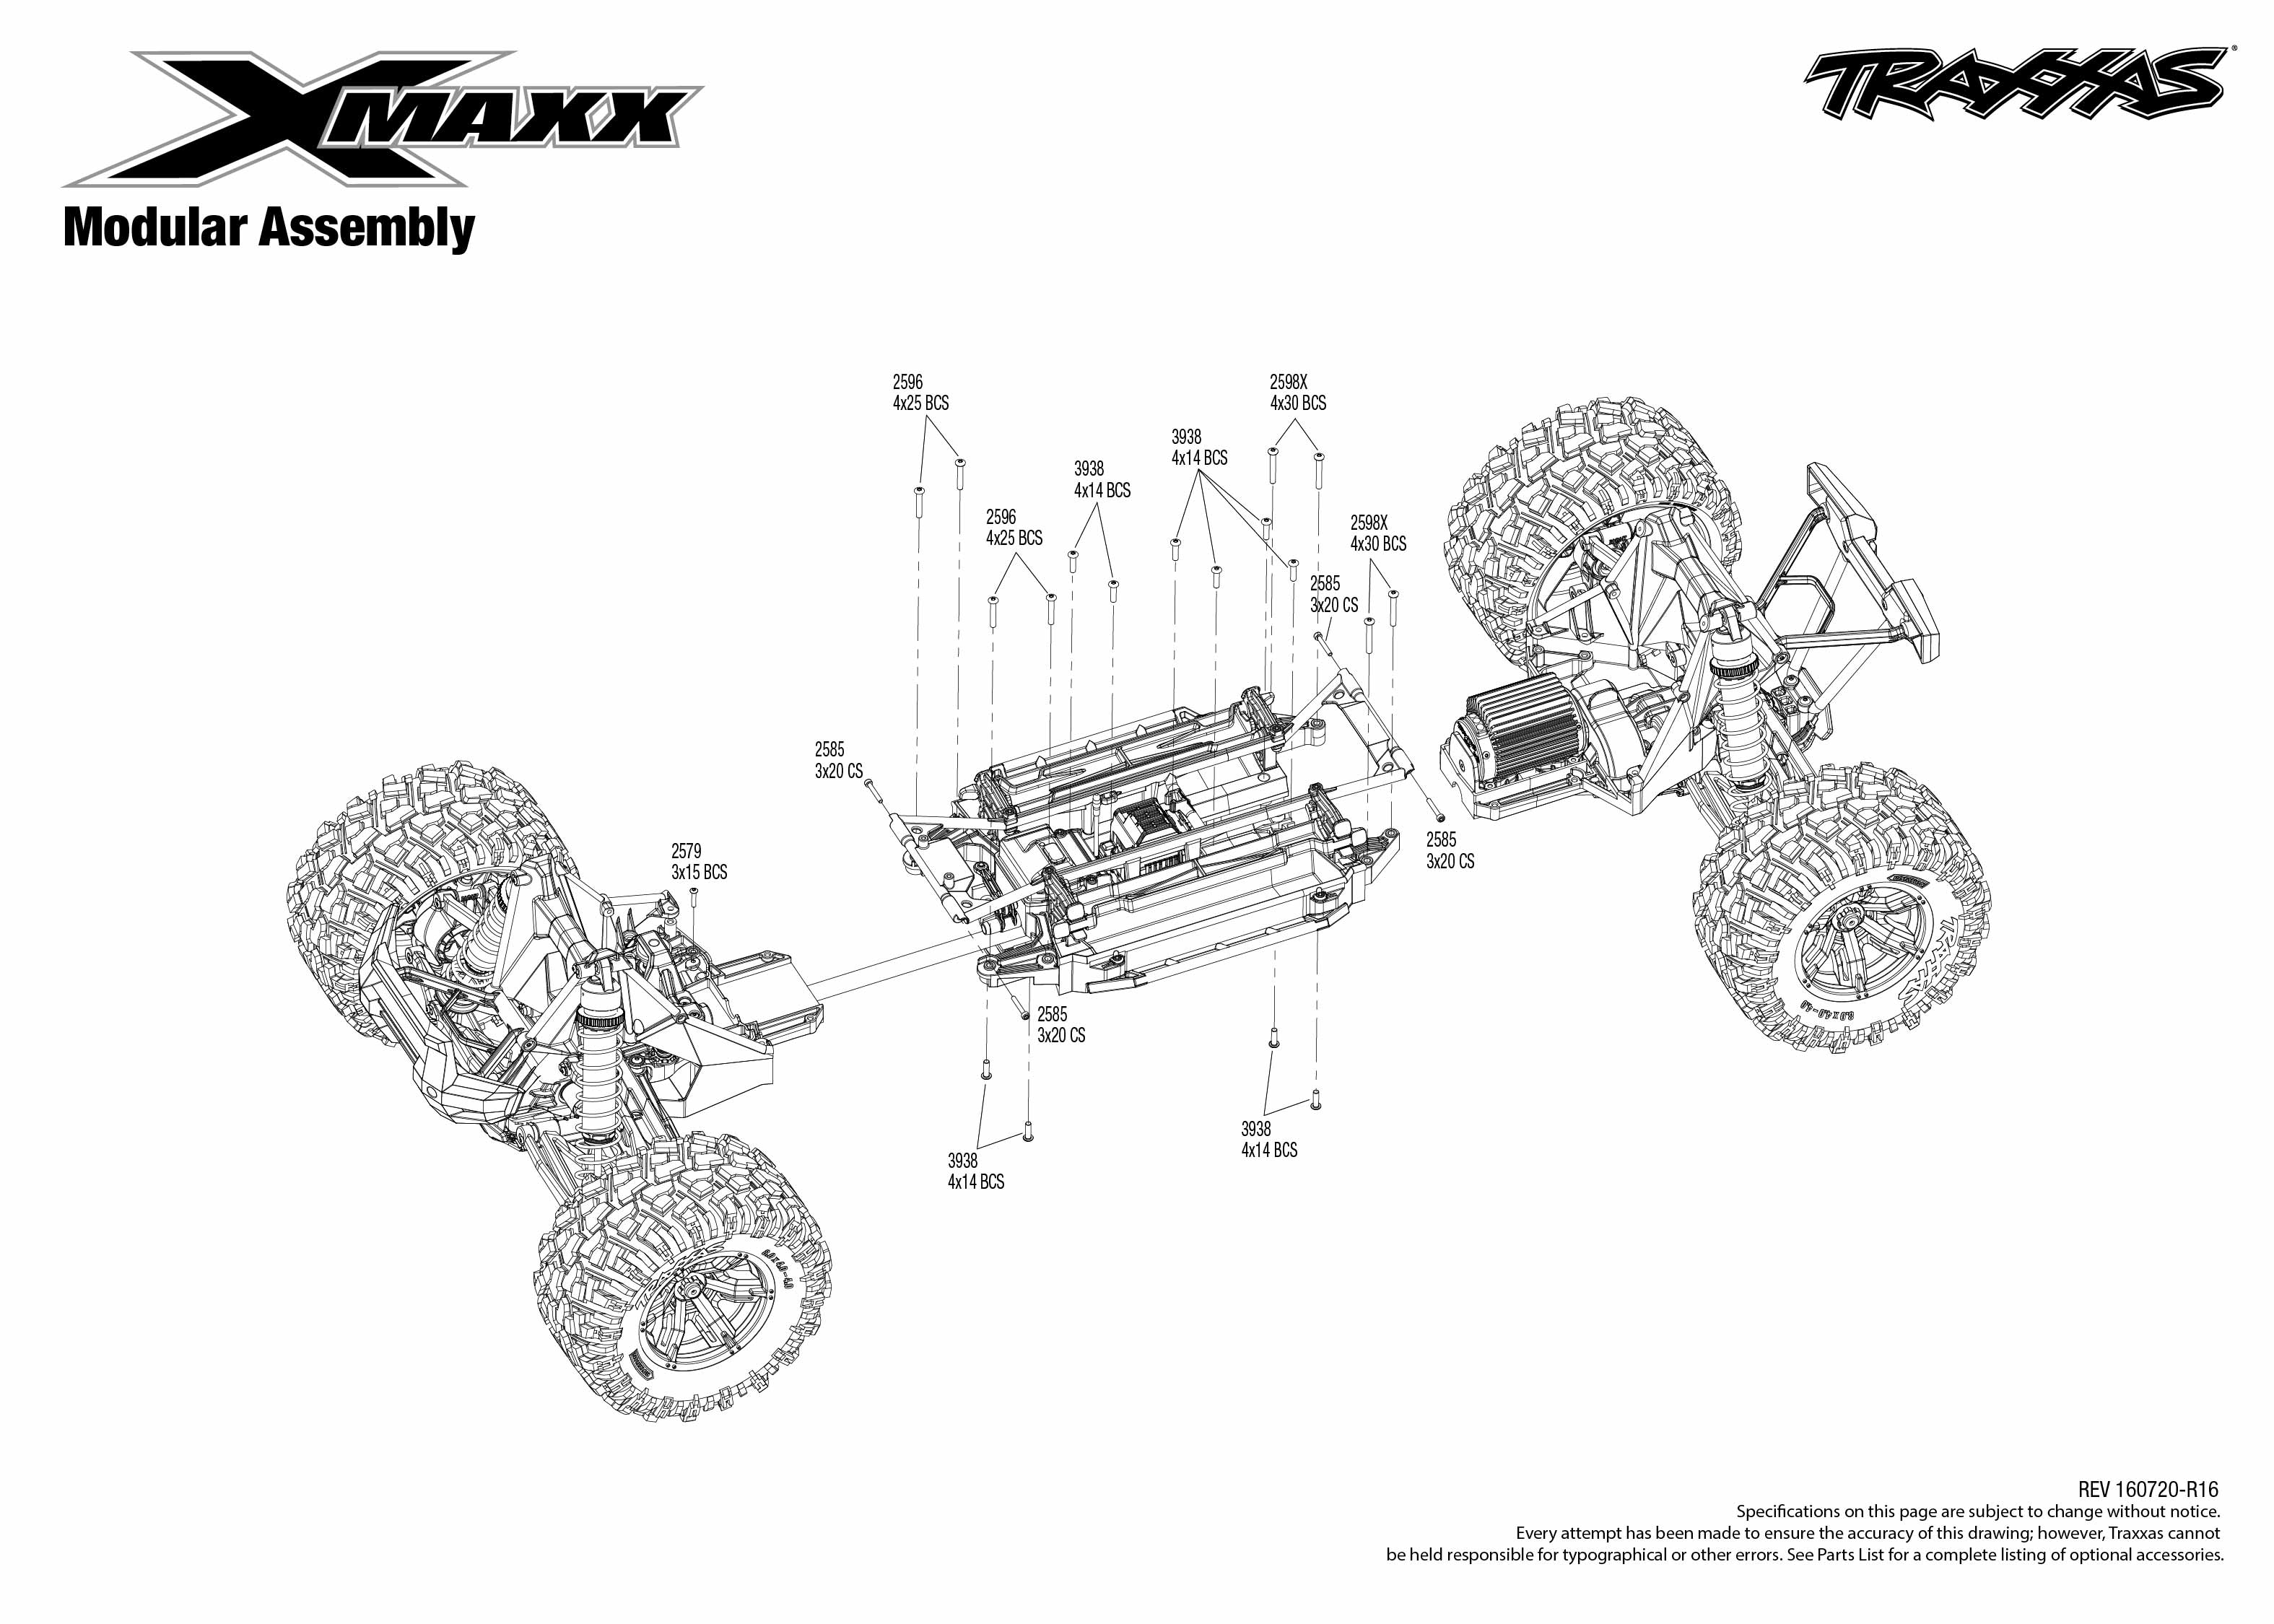 traxxas t maxx 2 5 transmission diagram small engine ignition switch wiring x 77076 4 modular assembly exploded view